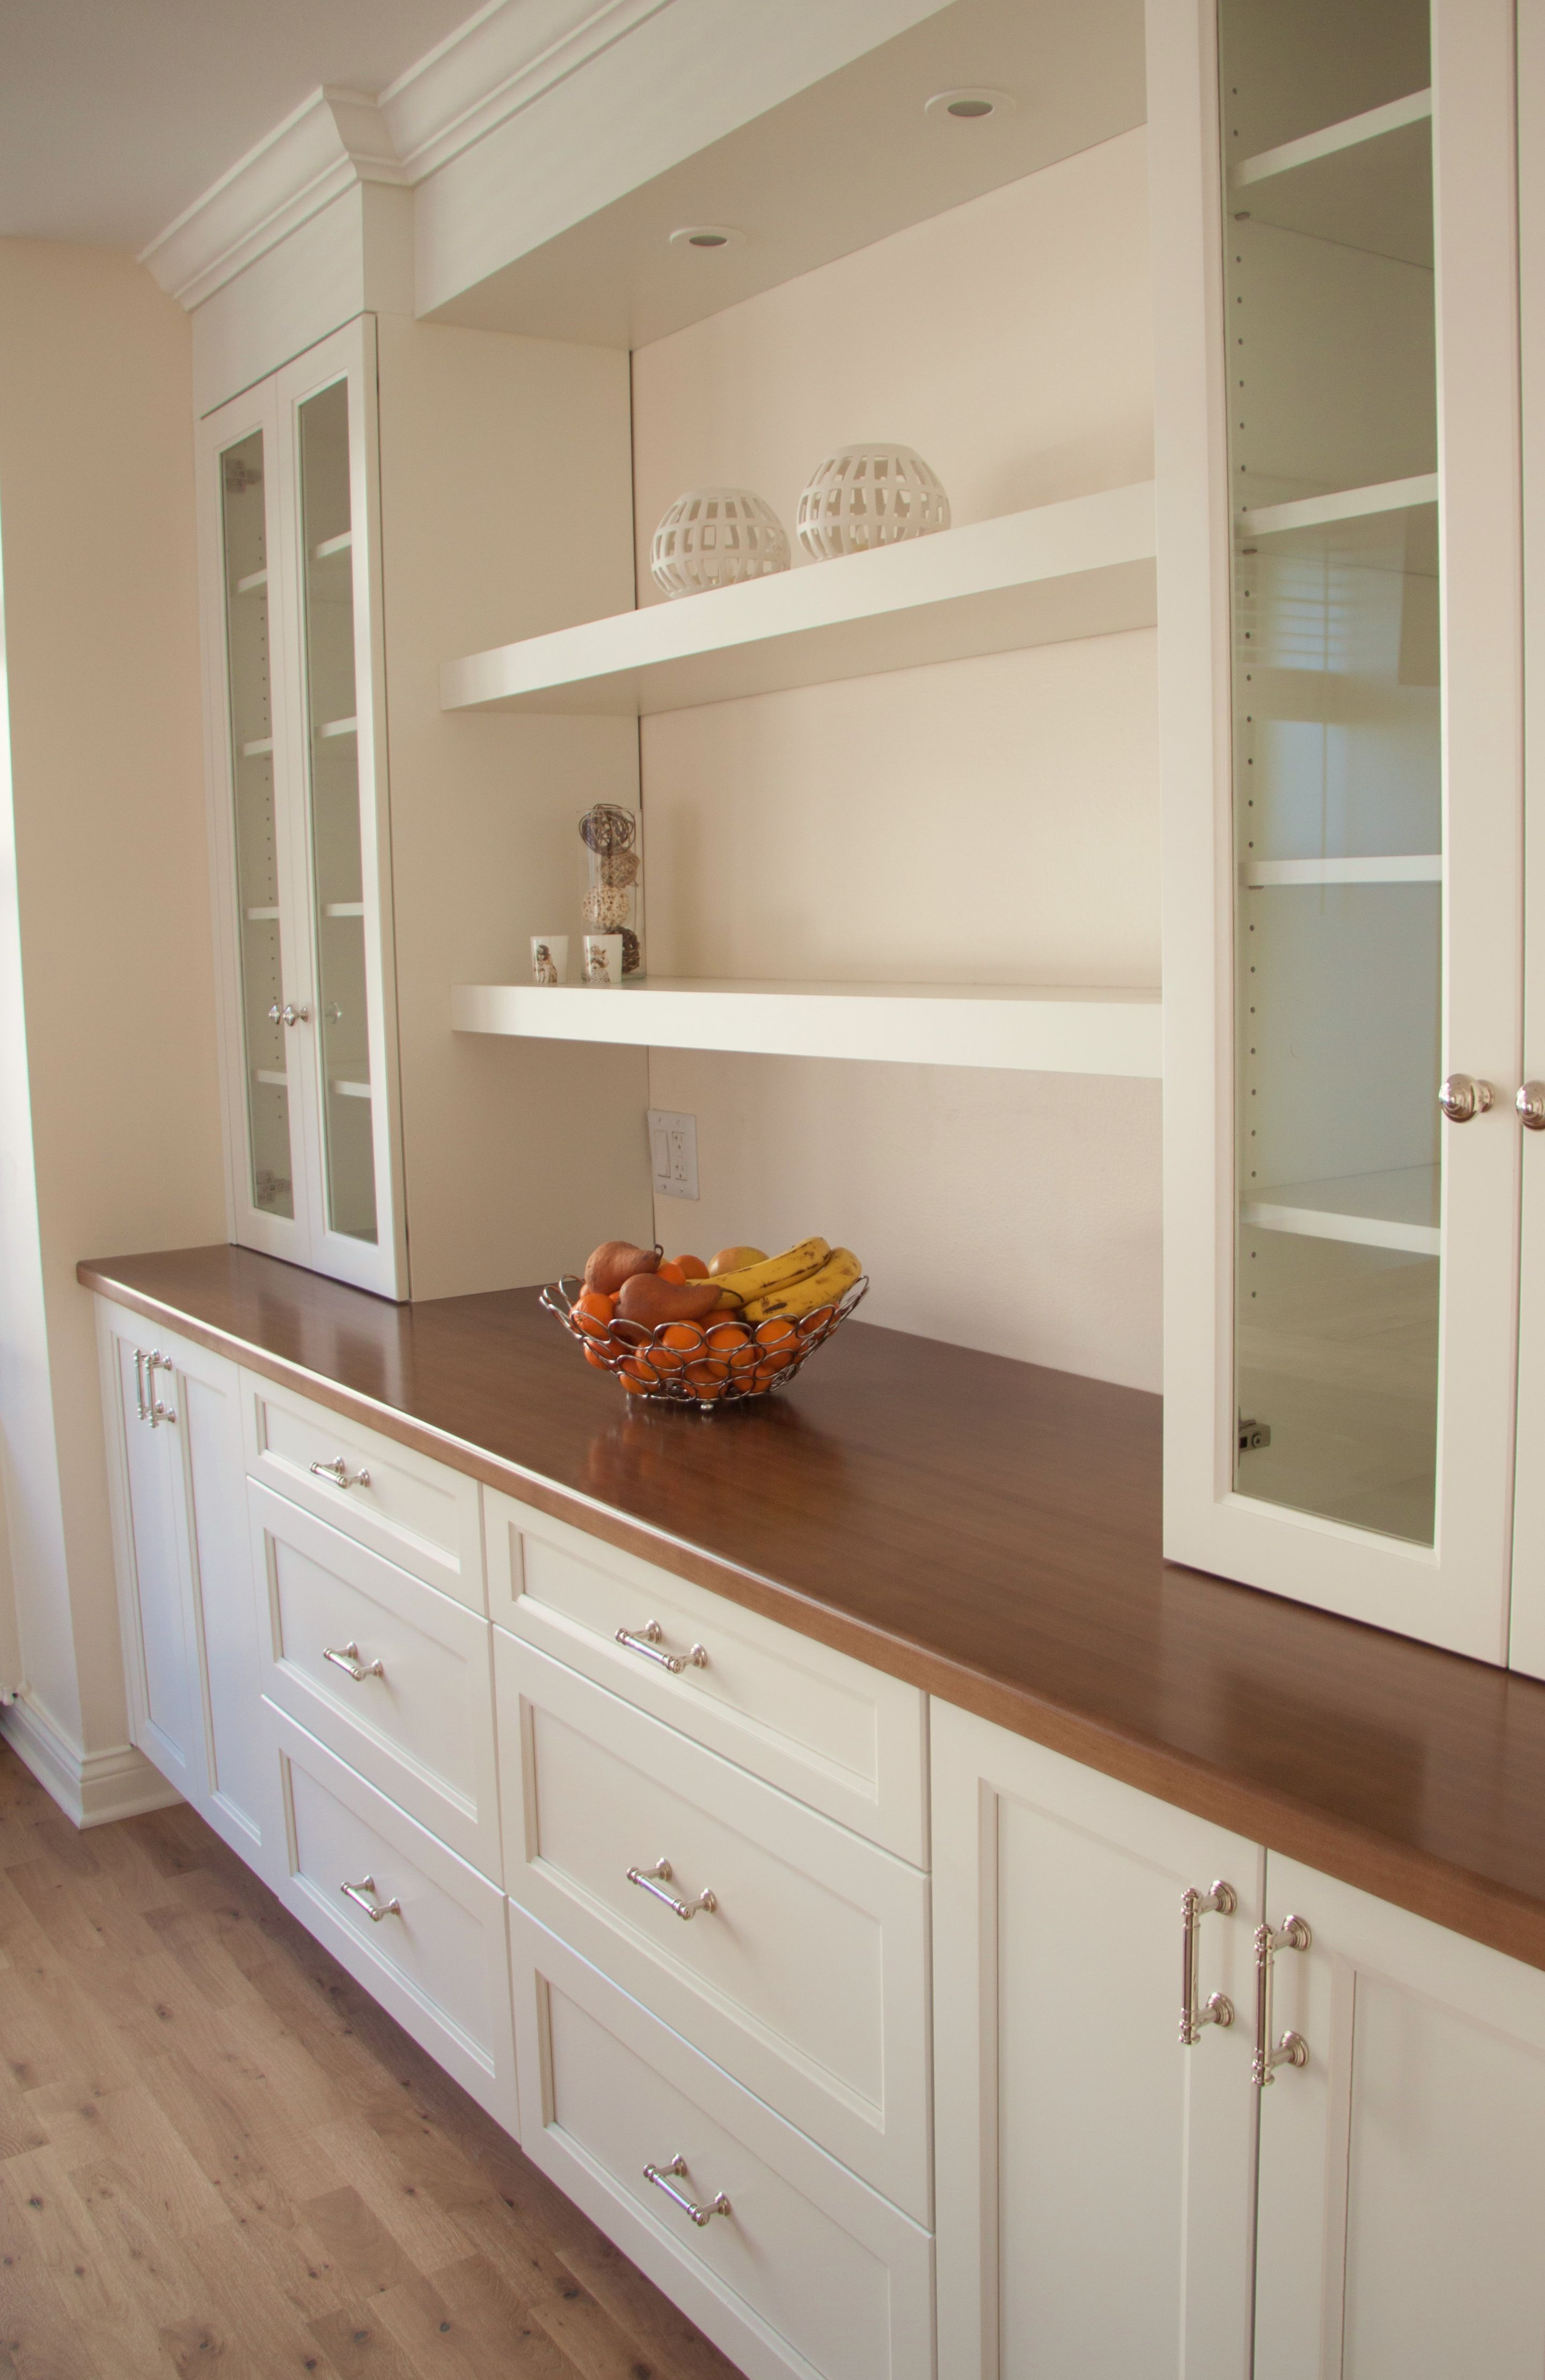 Dining Room Built In Cabinets And Storage Design (1 in ...